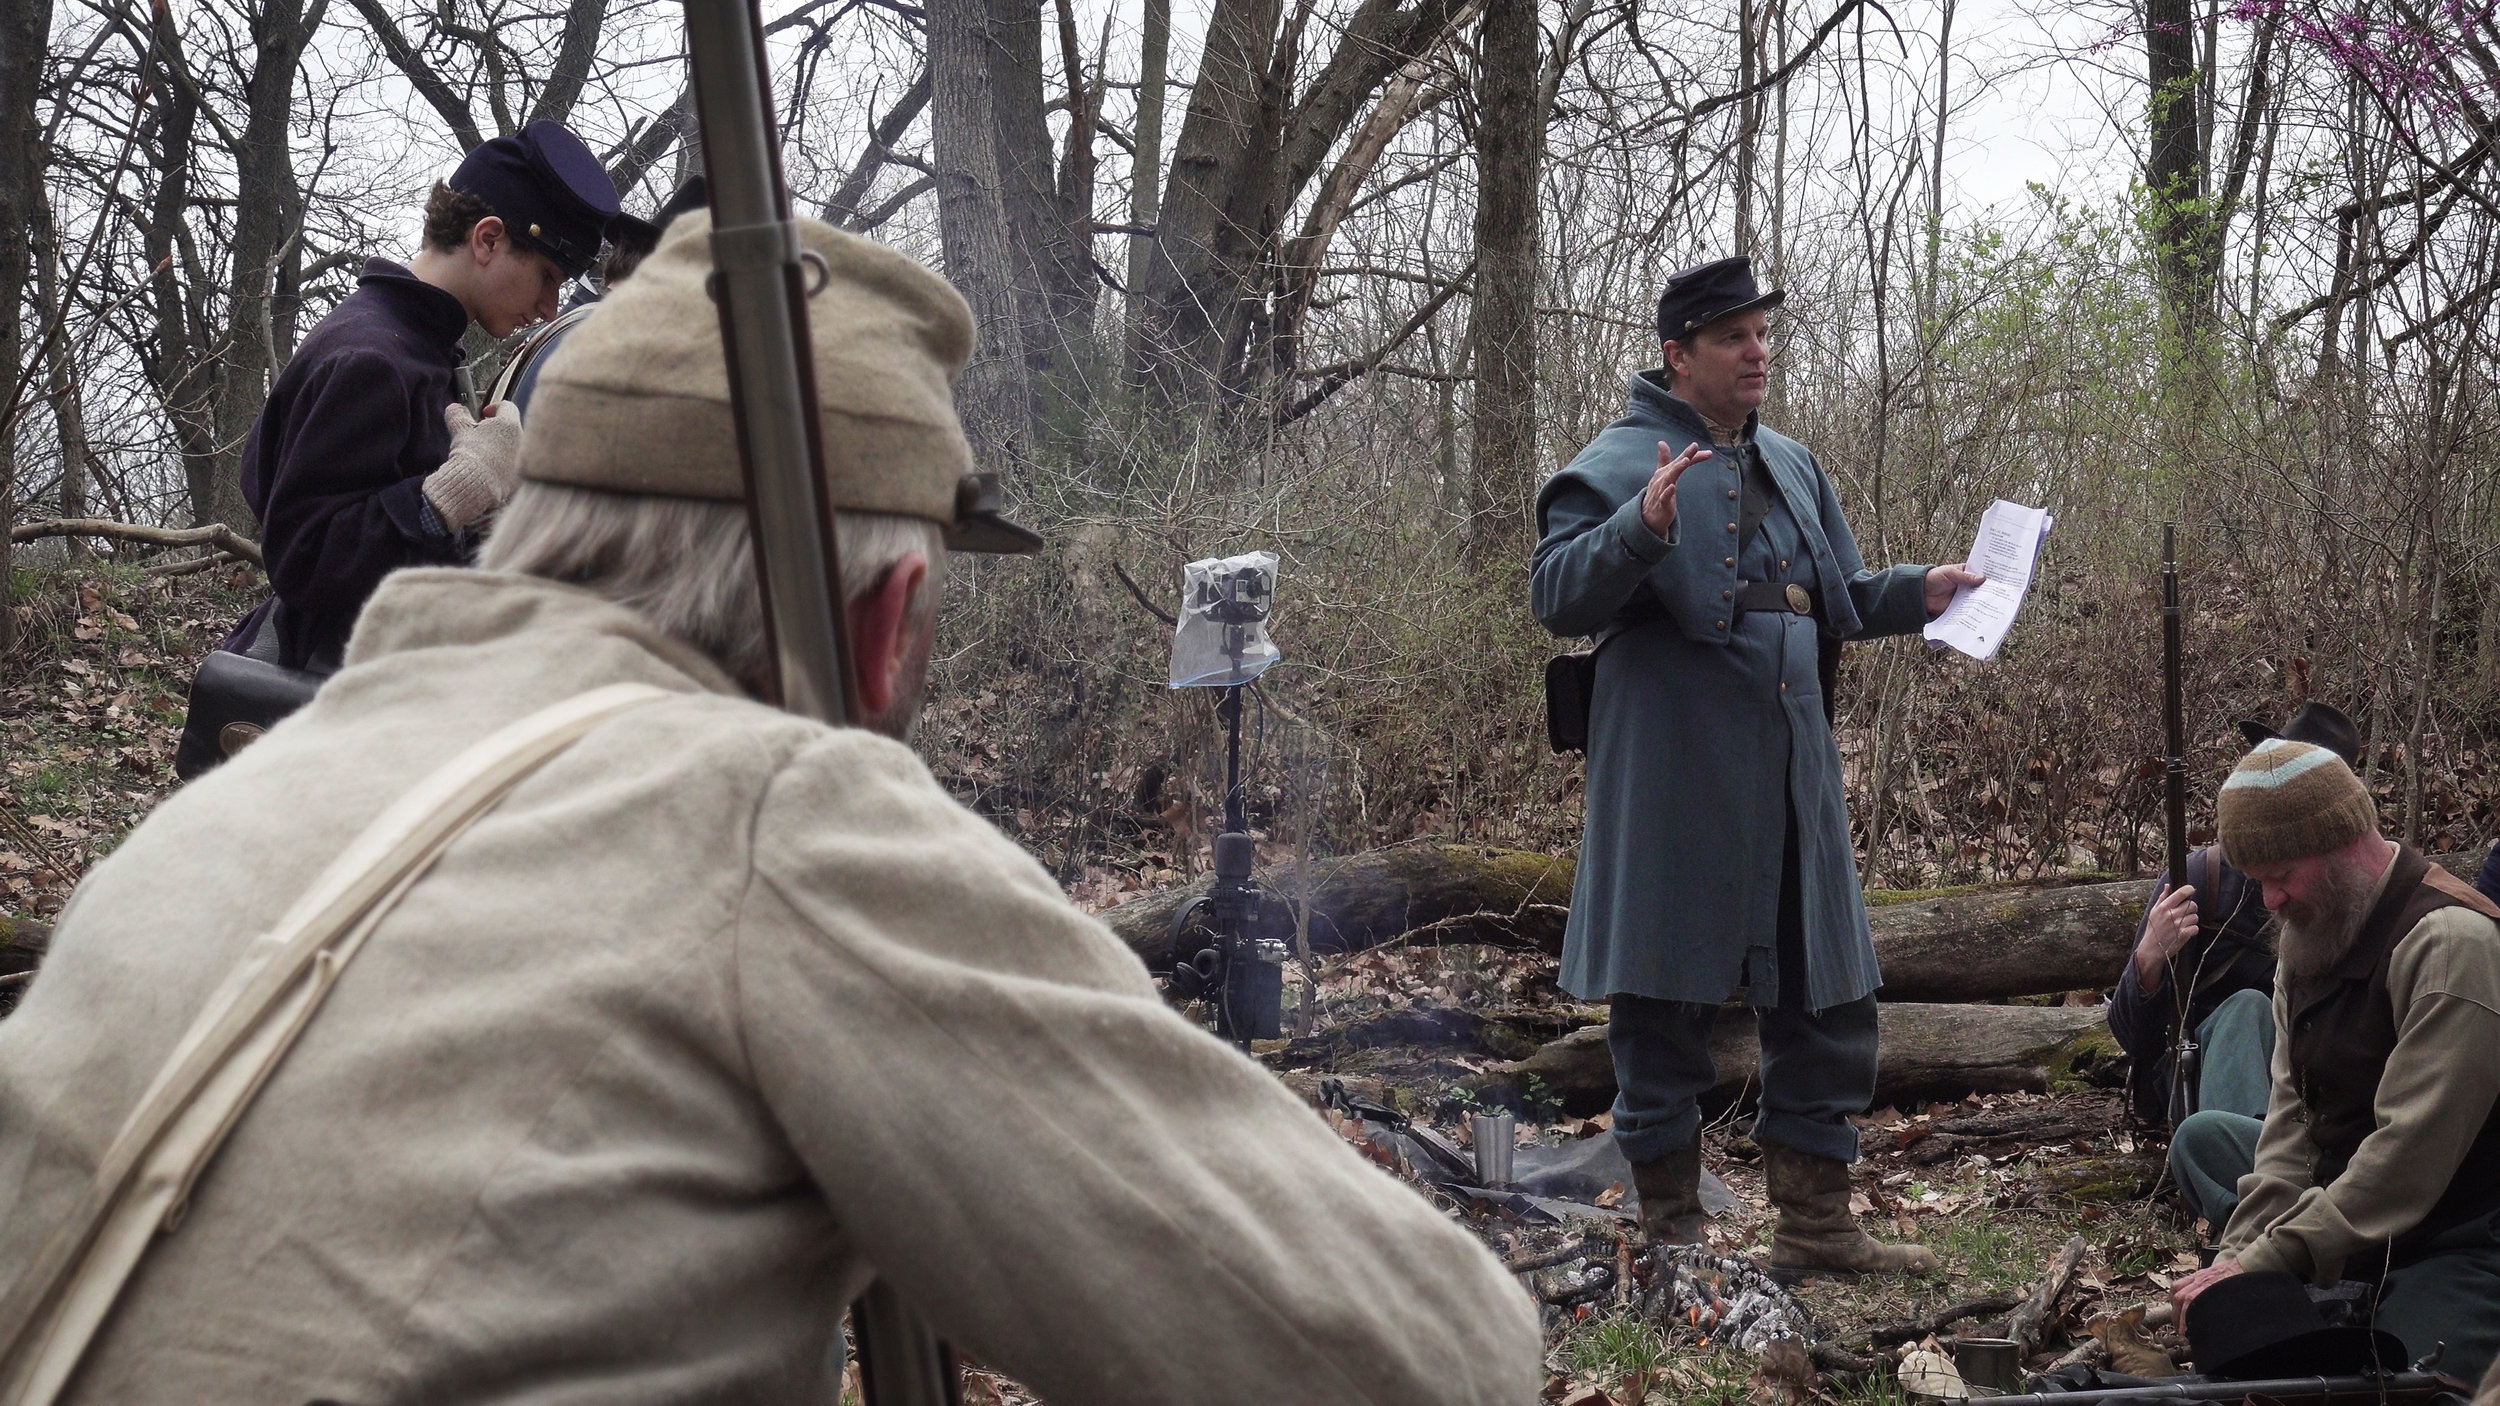 Shane Seley in center dressed as union soldier directing actors